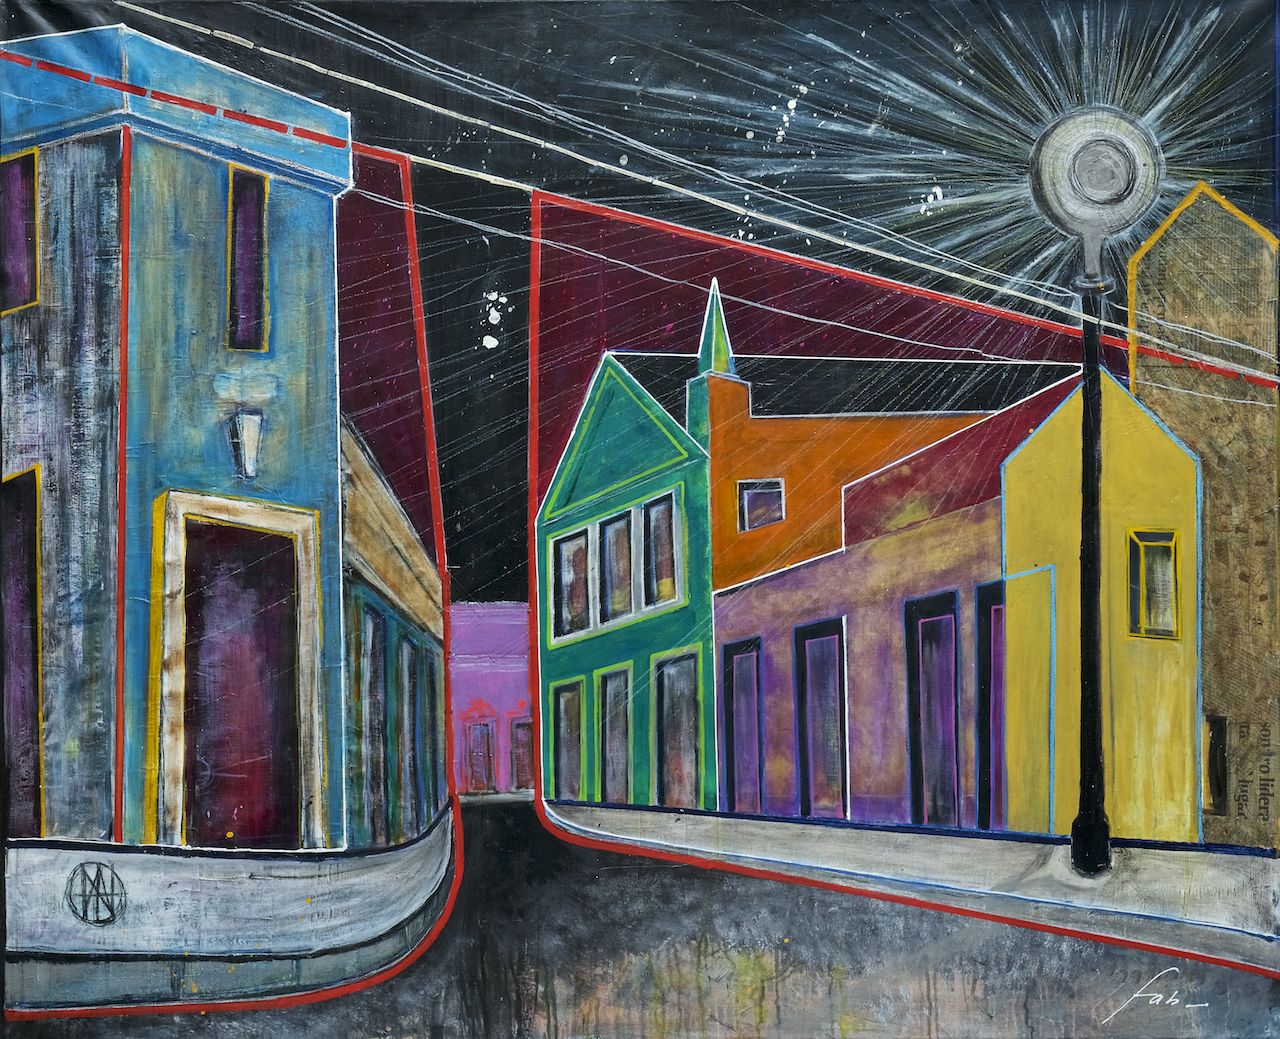 "<b>""Olinda at Night""</b> <span style= ""font-size:14px"">(2018)</span> <br><p style = ""font-size:14px"">Acrylic on canvas<br>49 x 60 in; 124 x 152 cm</p>"